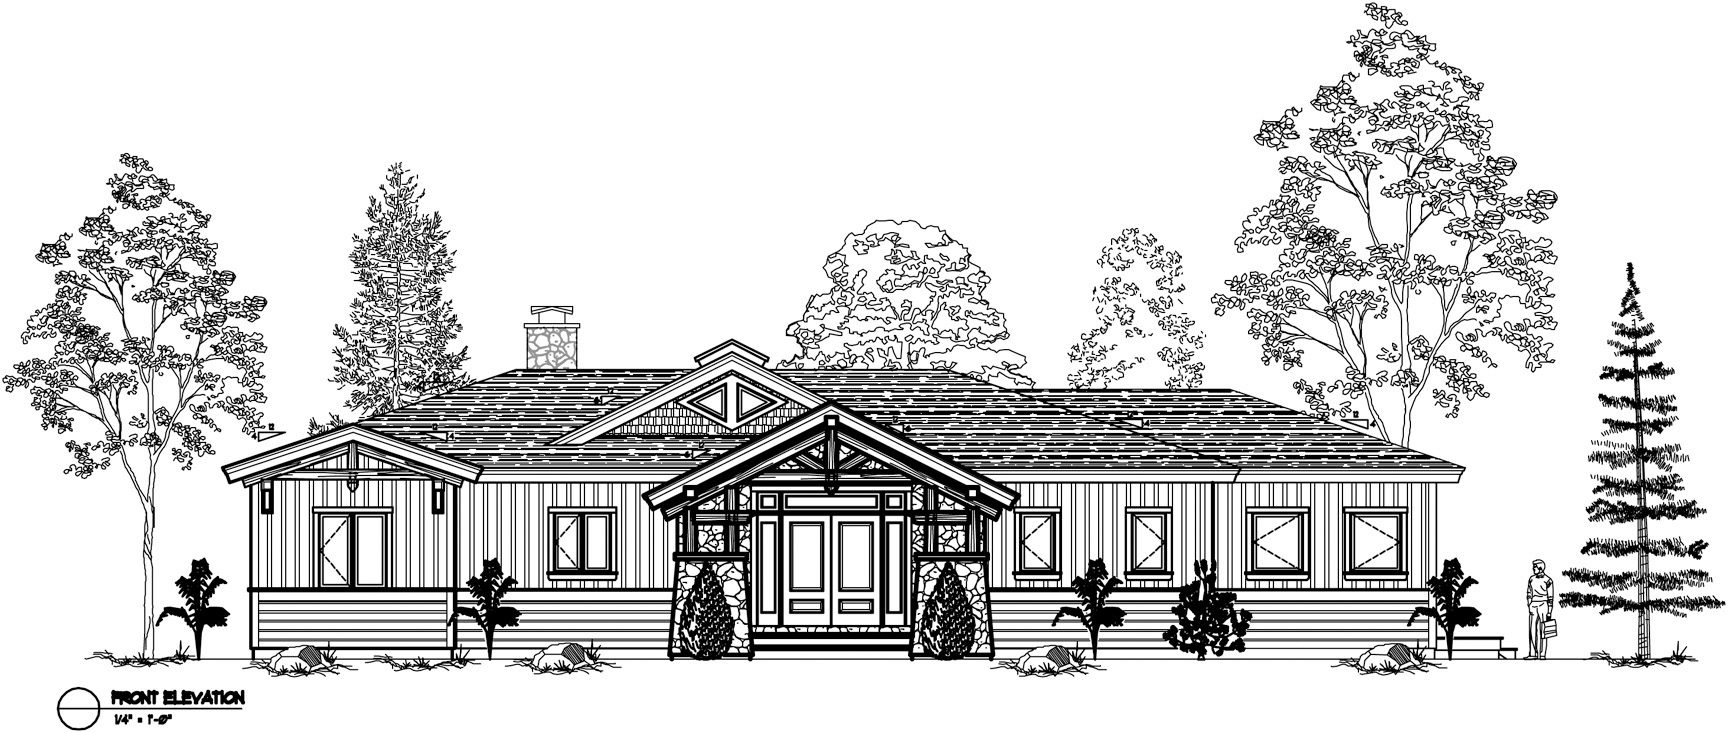 Normerica Timber Frames, House Plan, The Highrock 3579, Front Elevation